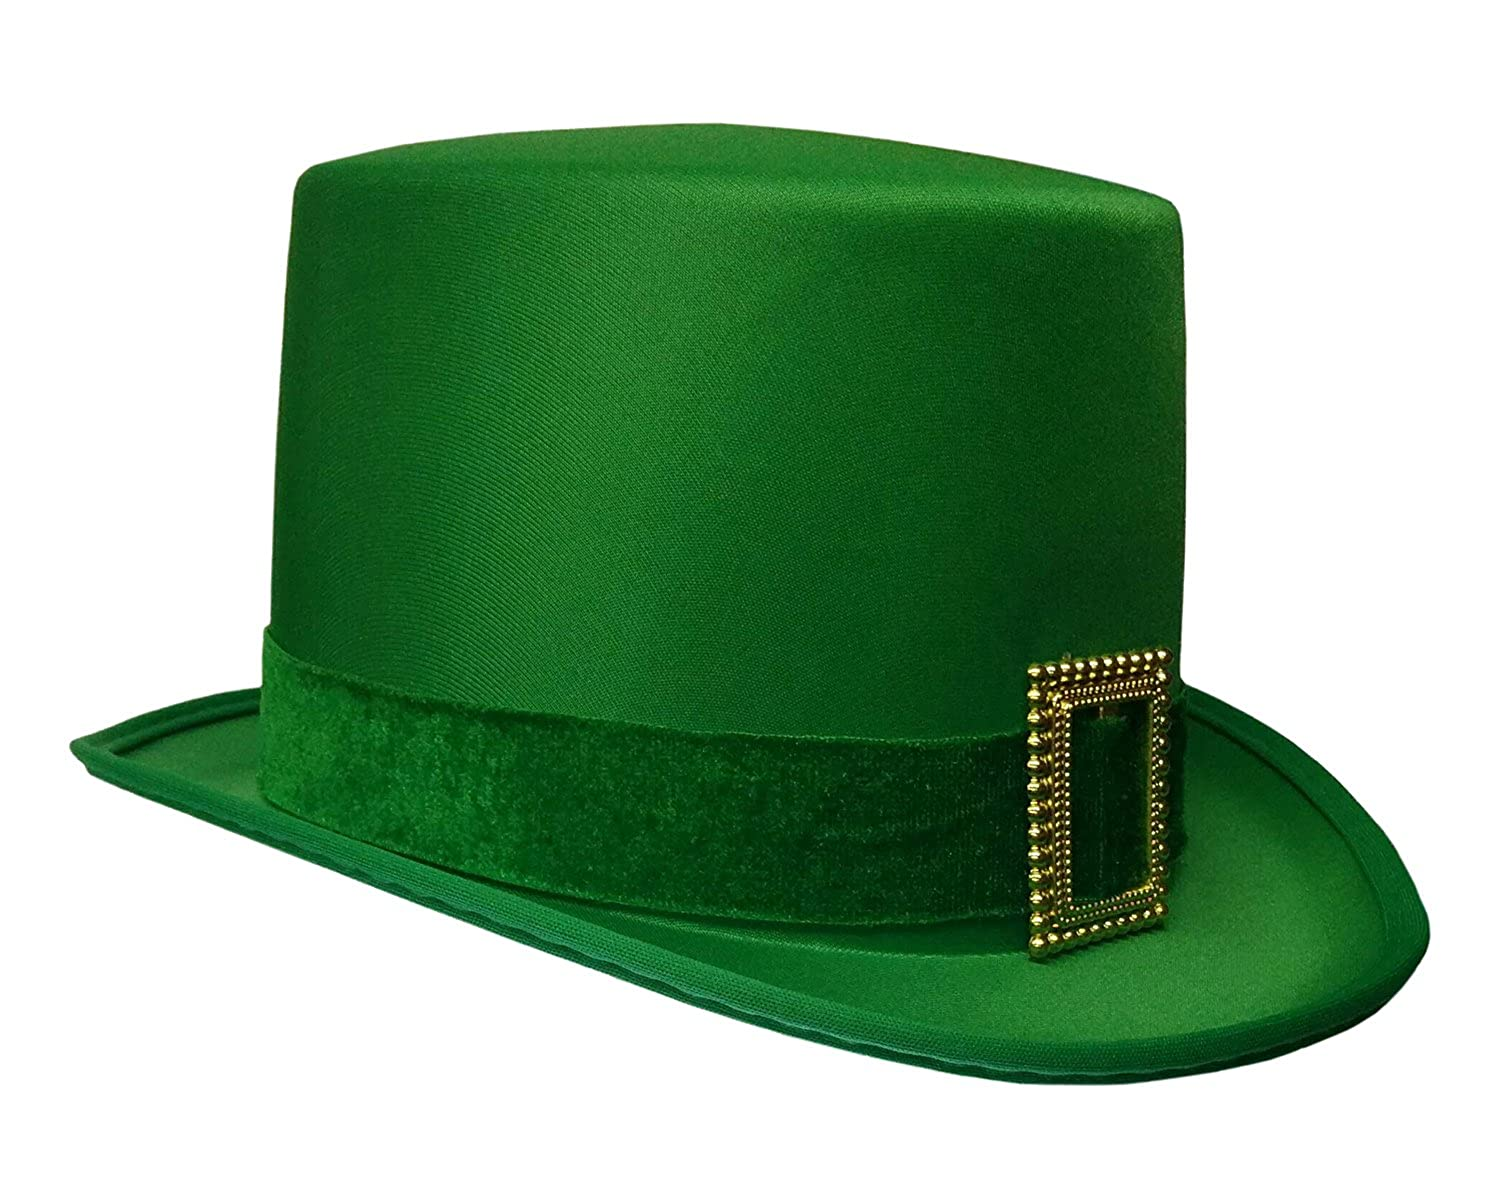 Amazon.com  St. Patrick s Day Leprechaun Green Satin Top Hat with Buckle  Adult Costume Cap  Clothing aa3731f58341